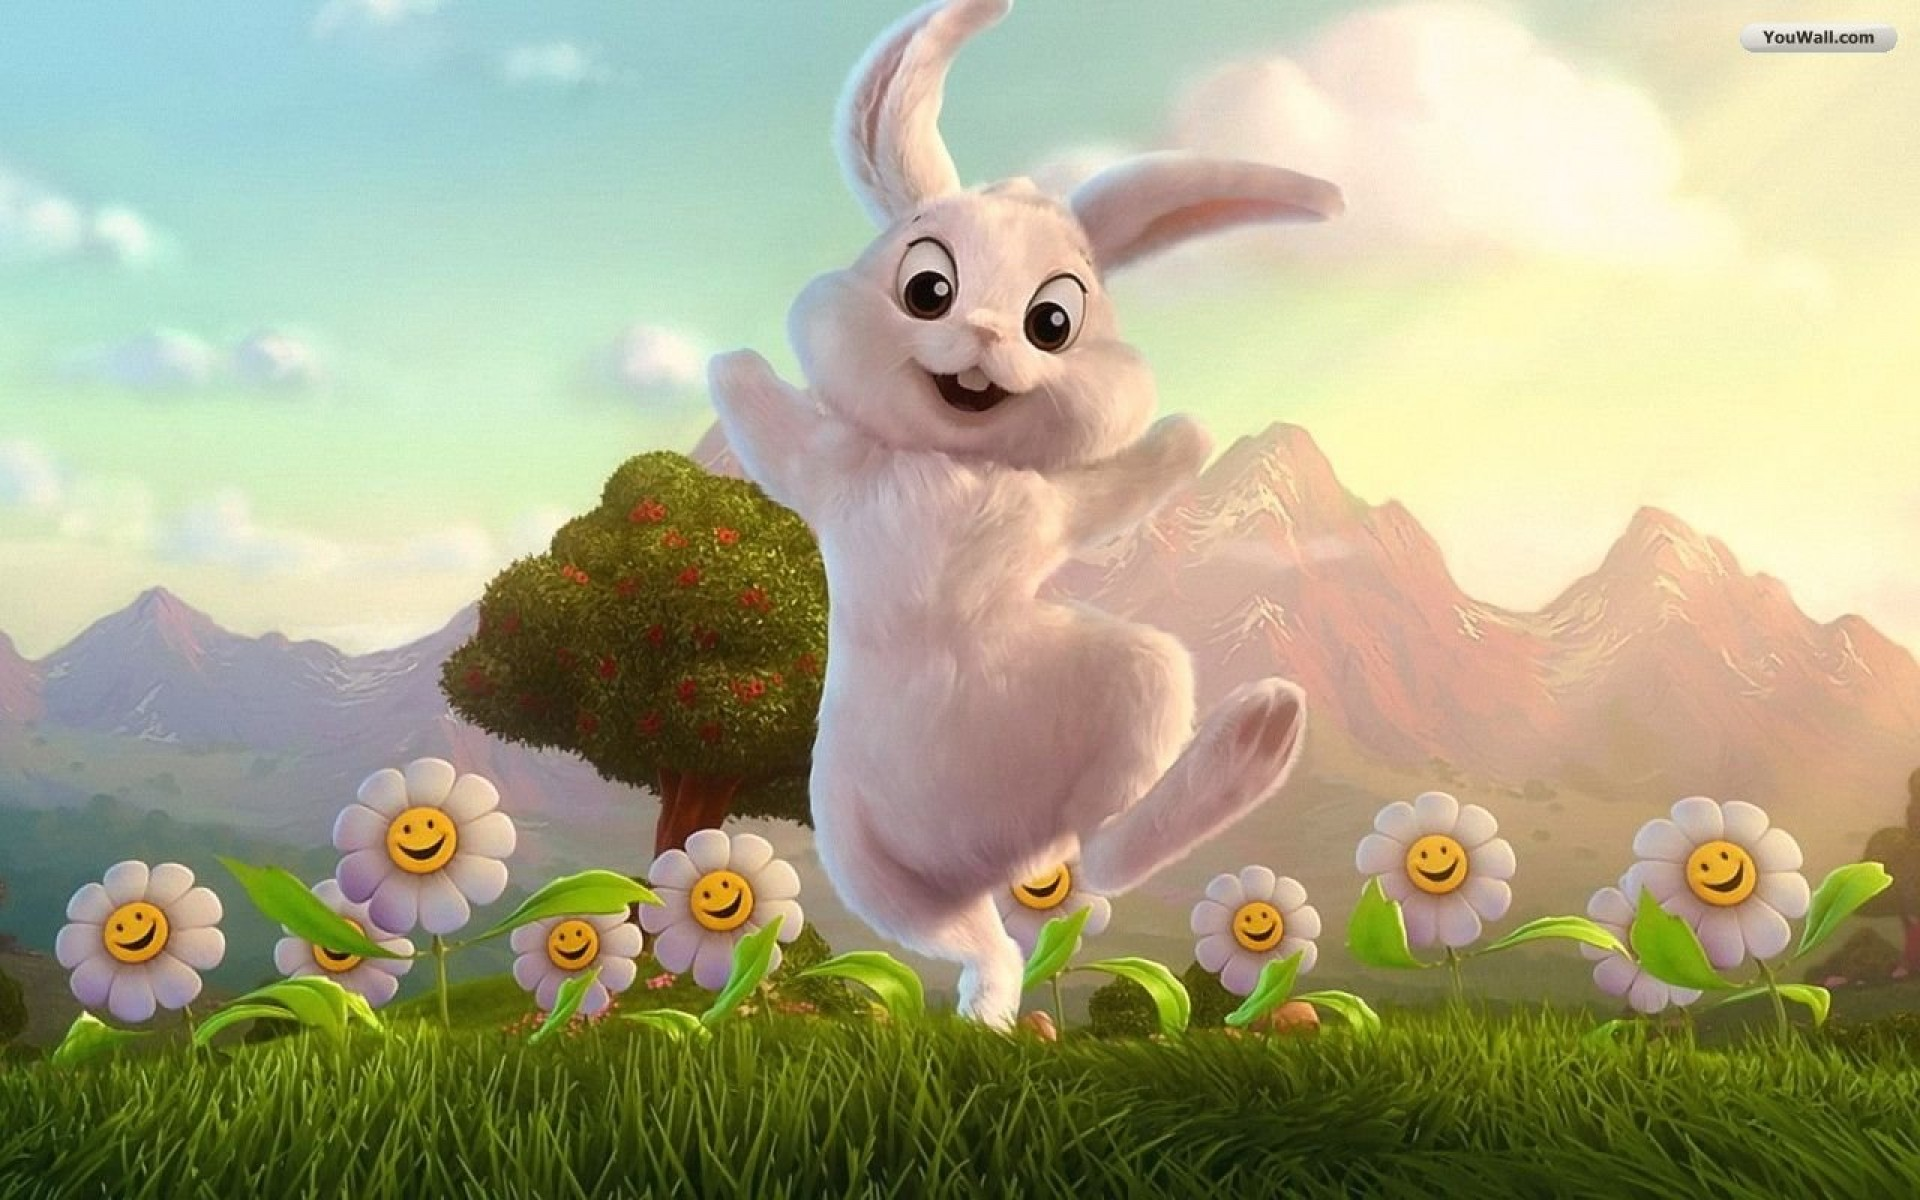 Happy Easter Bunny Pictures 2019 Funny Easter Bunny Images